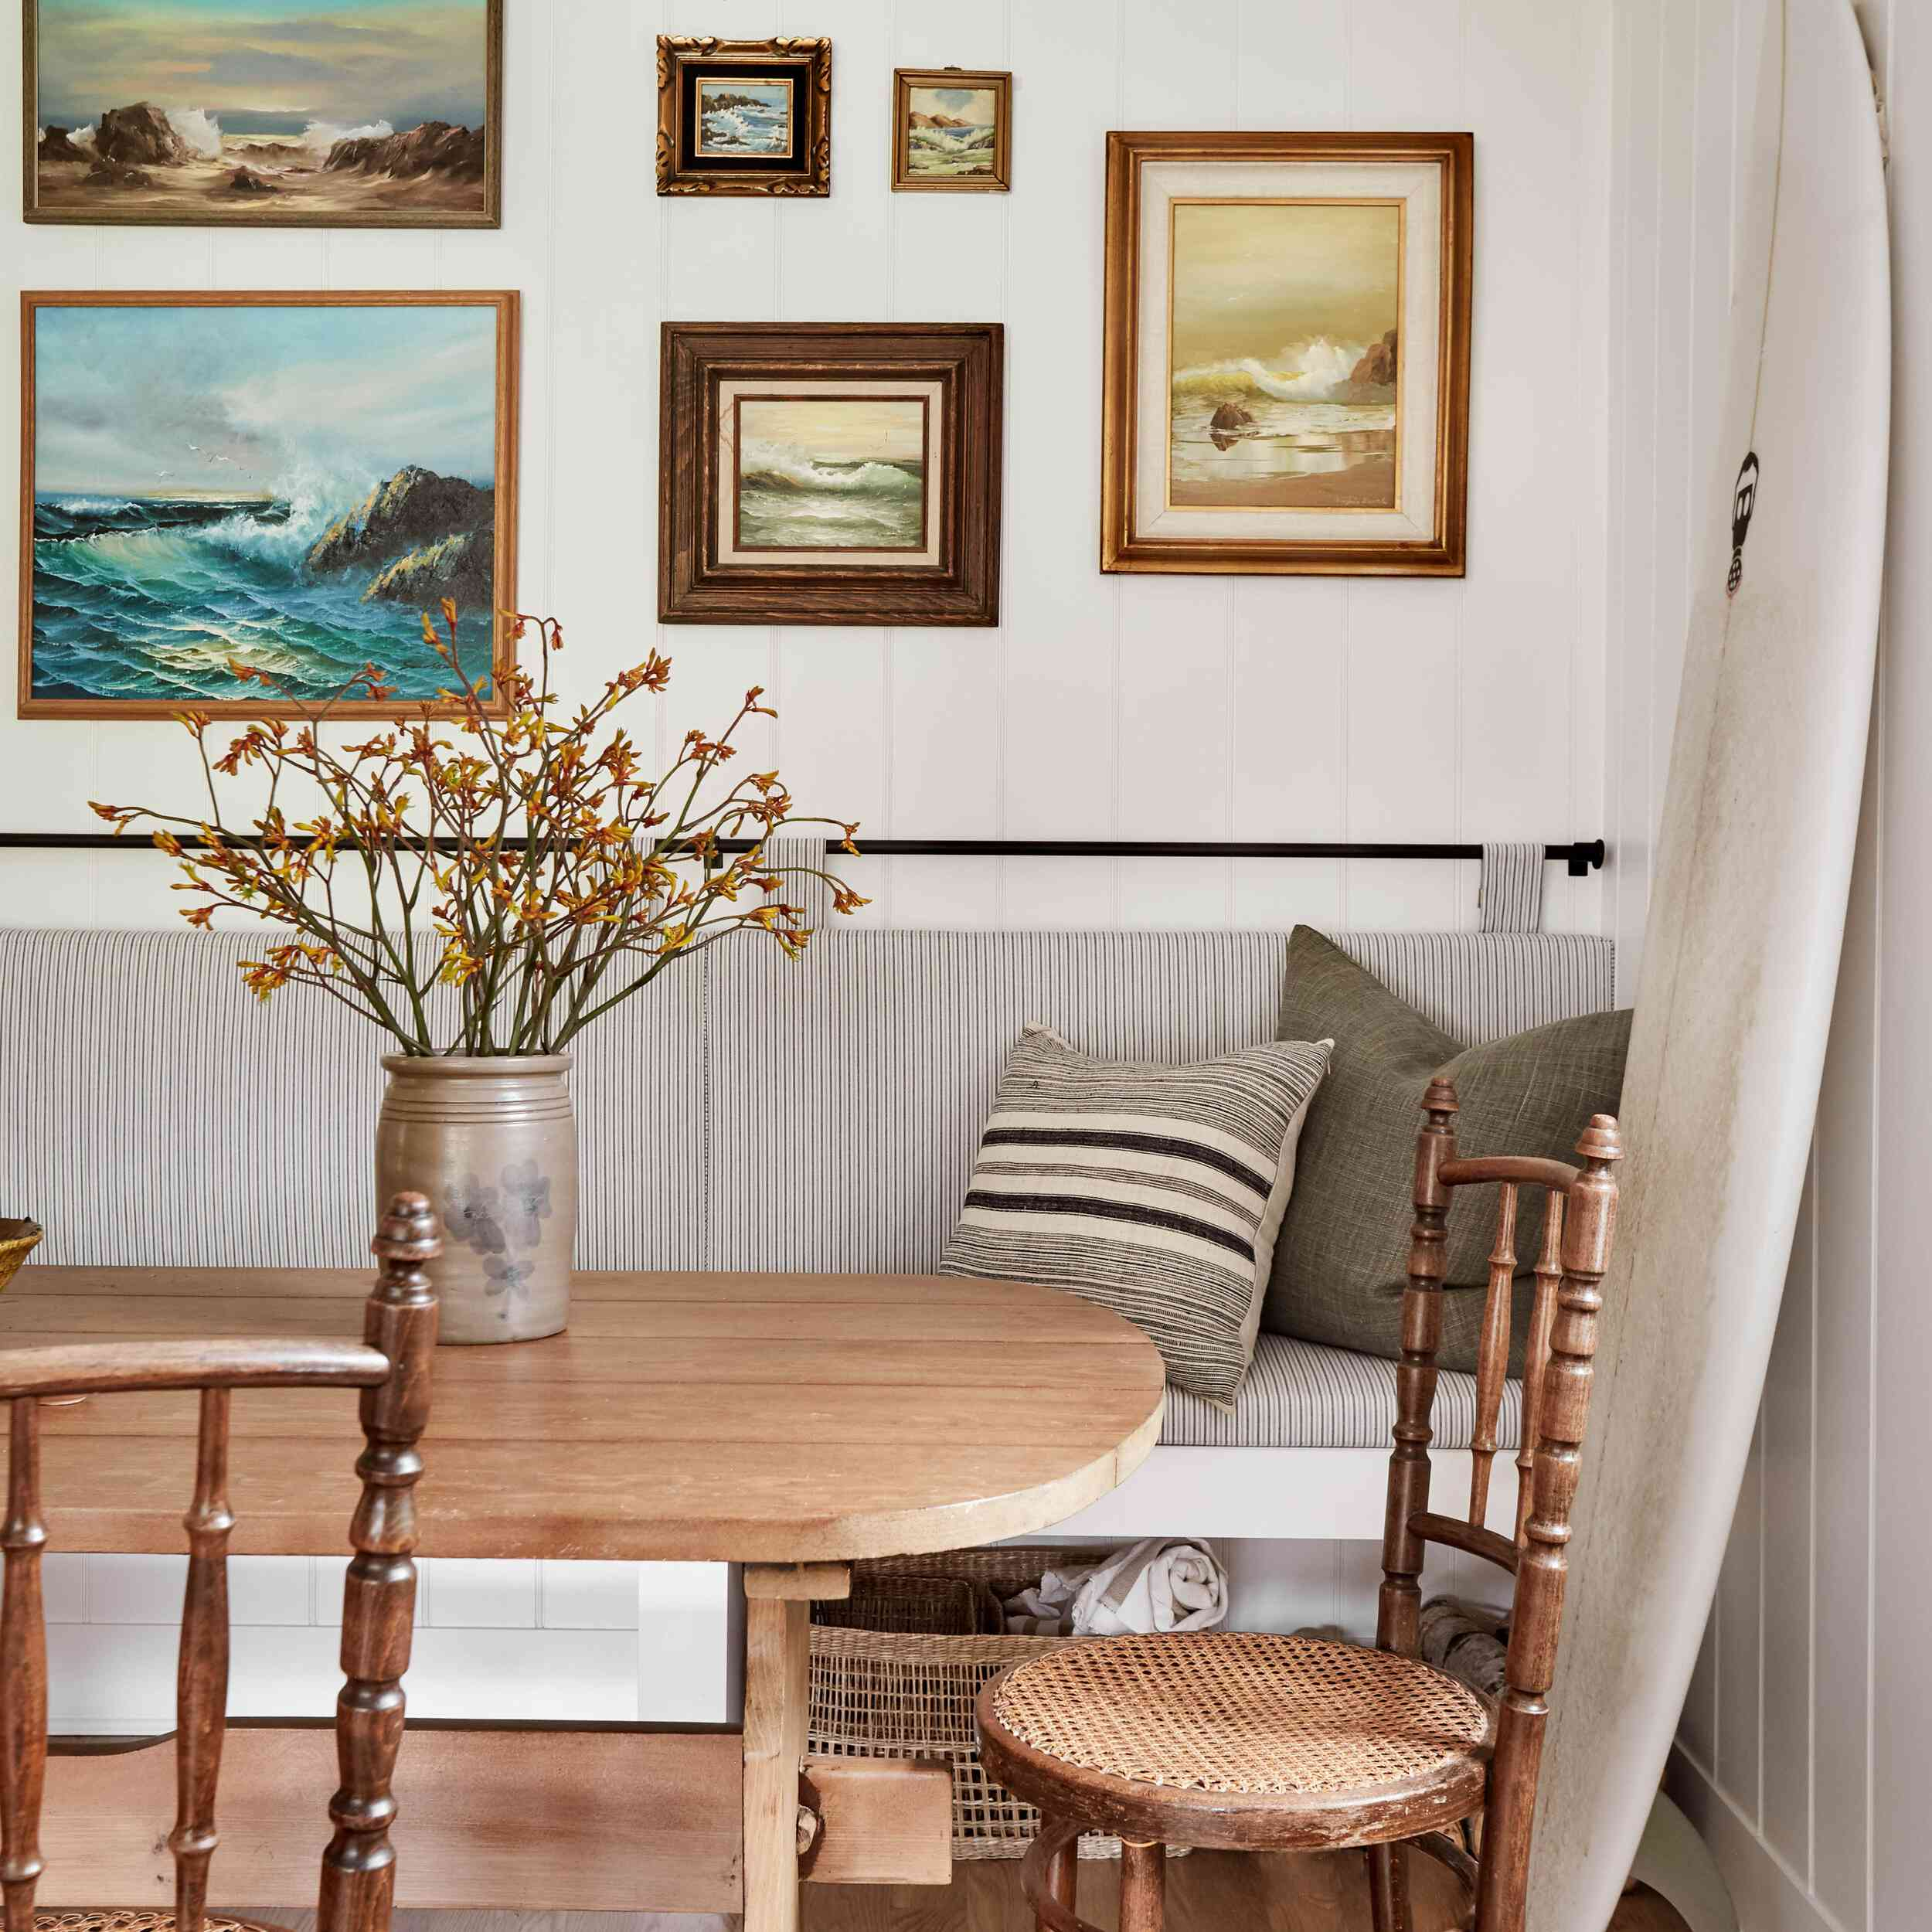 Surf-inspired cottage featuring art gallery wall in breakfast nook area